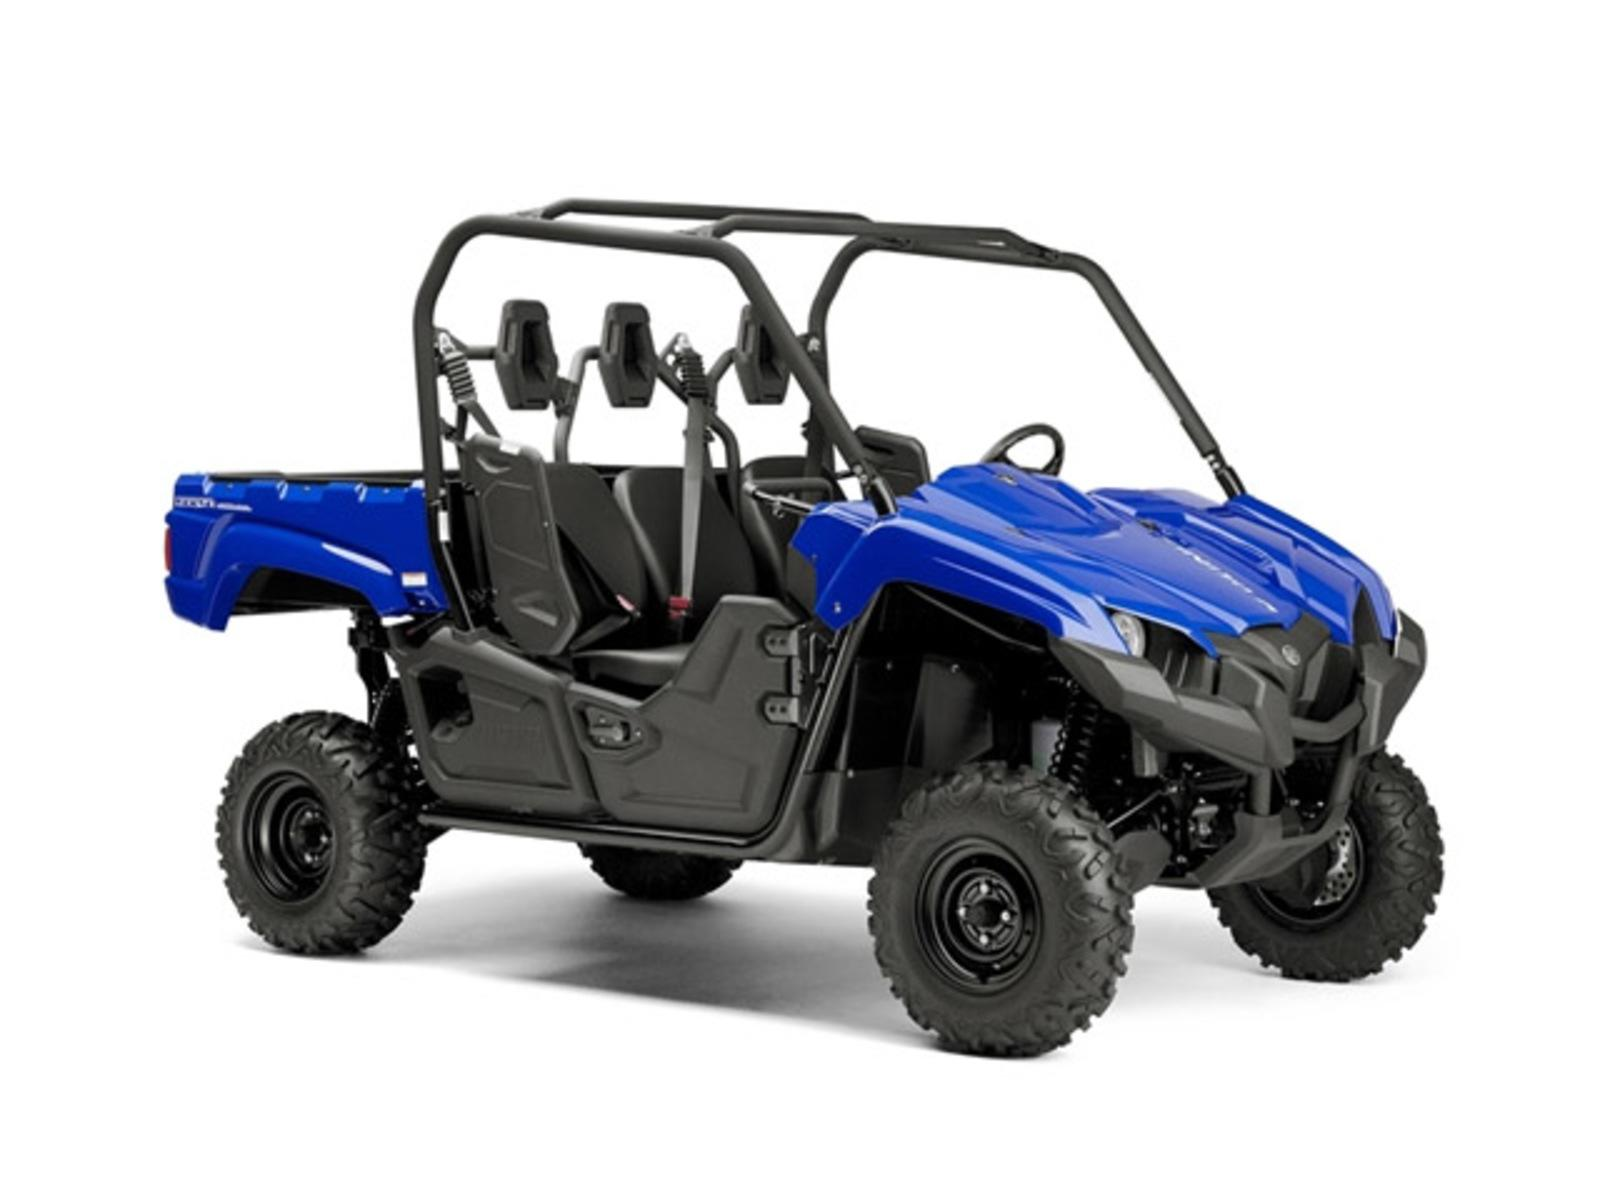 2015 yamaha viking review gallery top speed